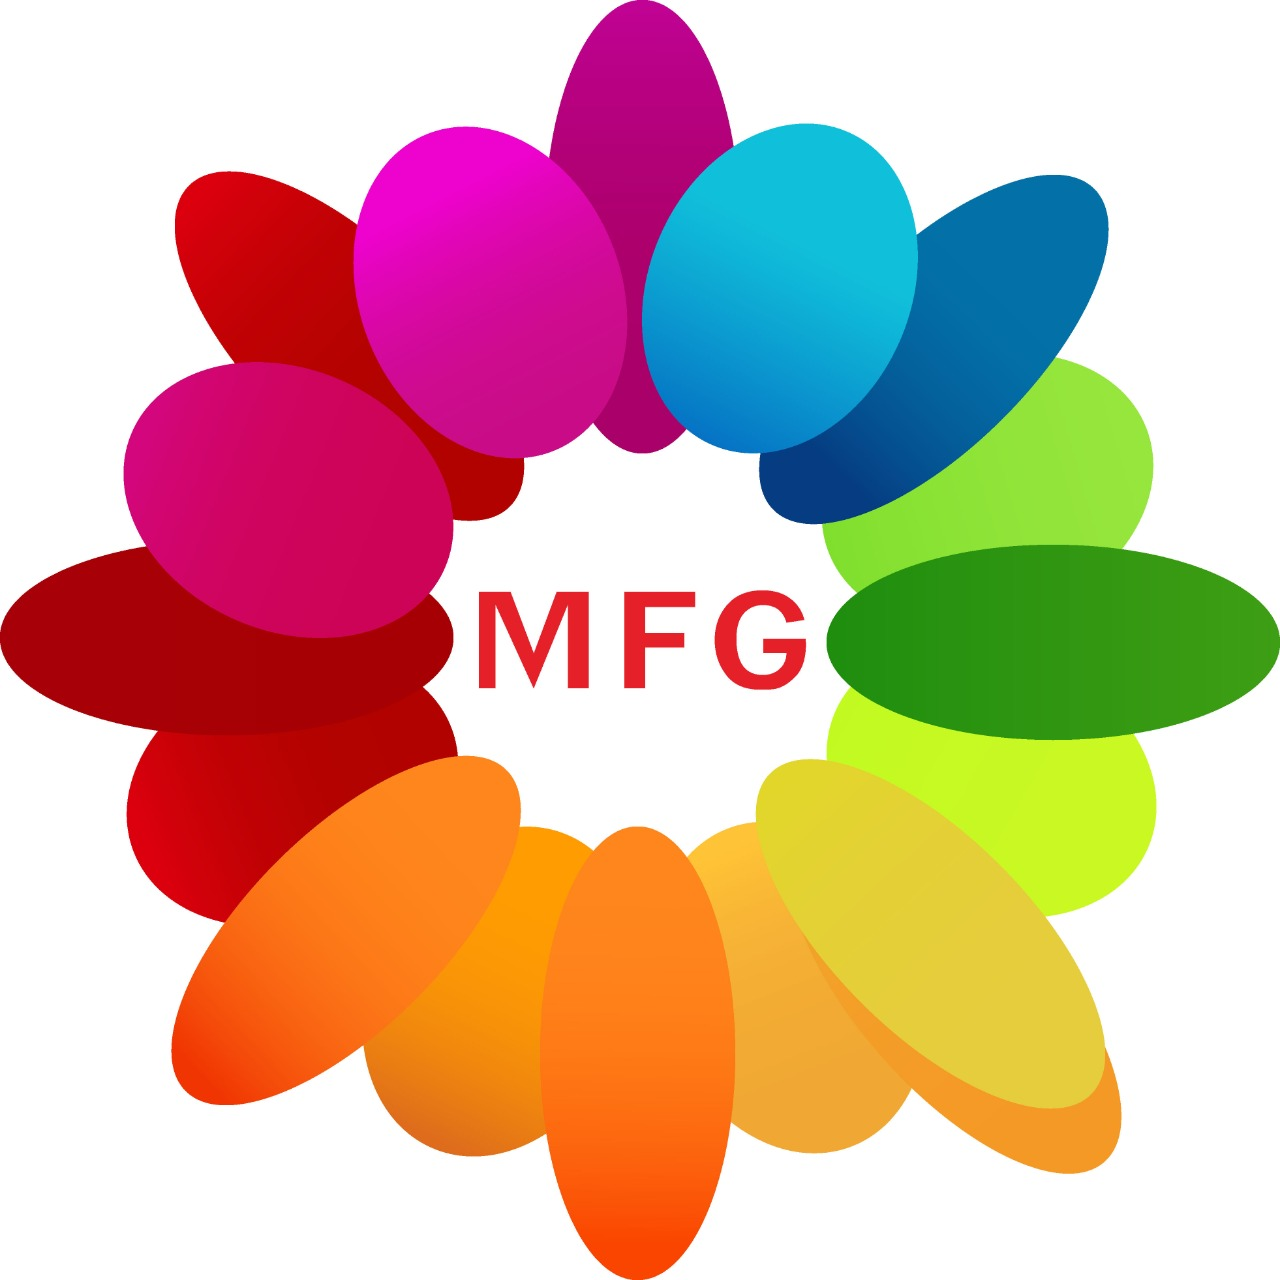 1 kg choco delight cake(Eggless) with knife and candles